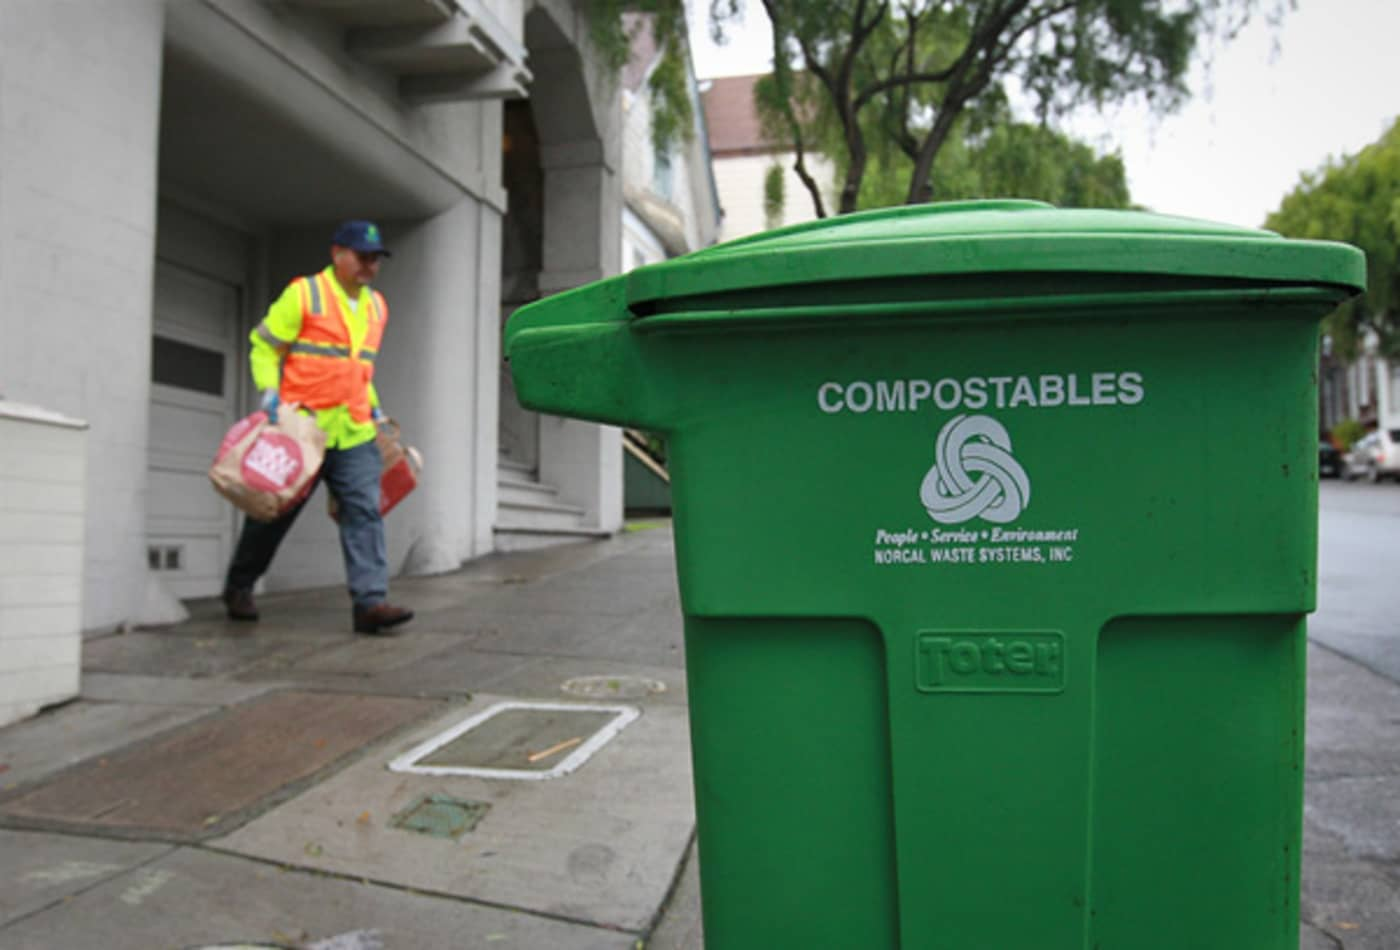 Americas-nanny-state-laws-compost.jpg